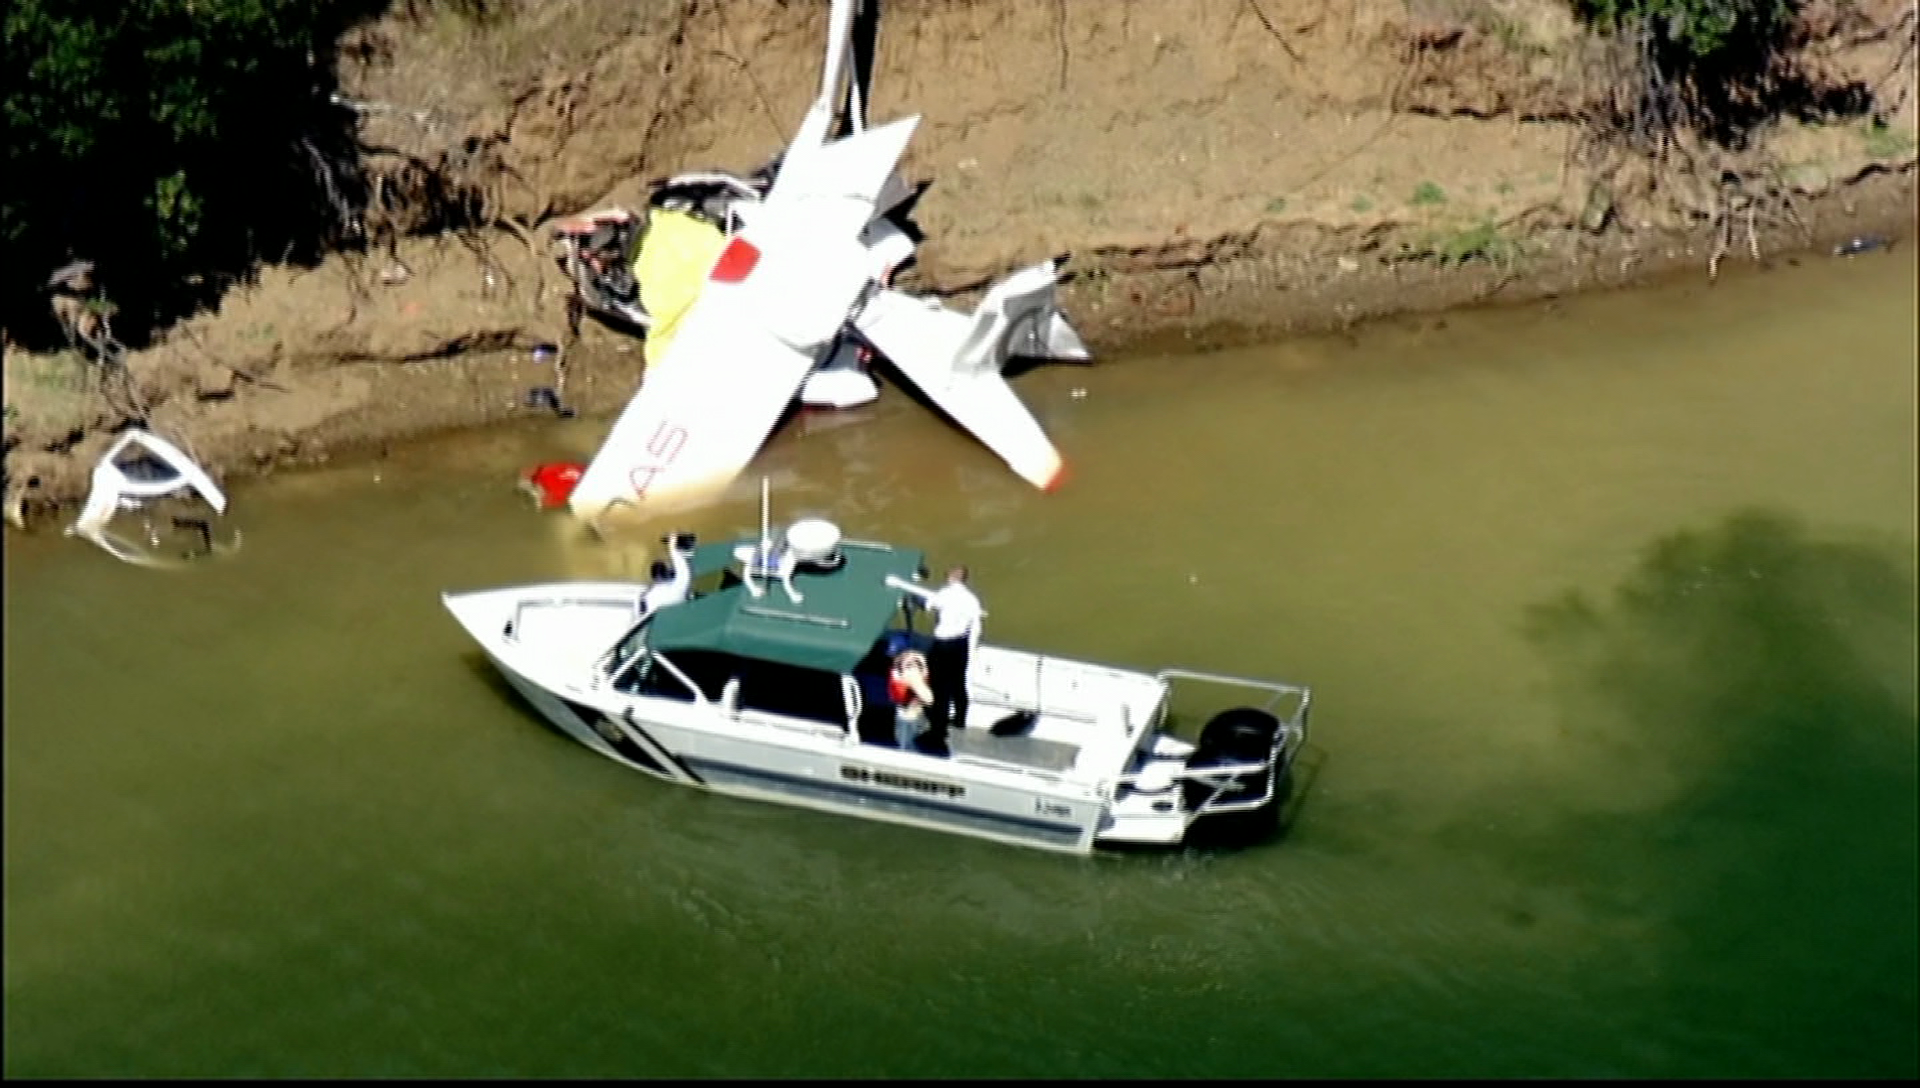 2 killed in small-plane crash near California lake